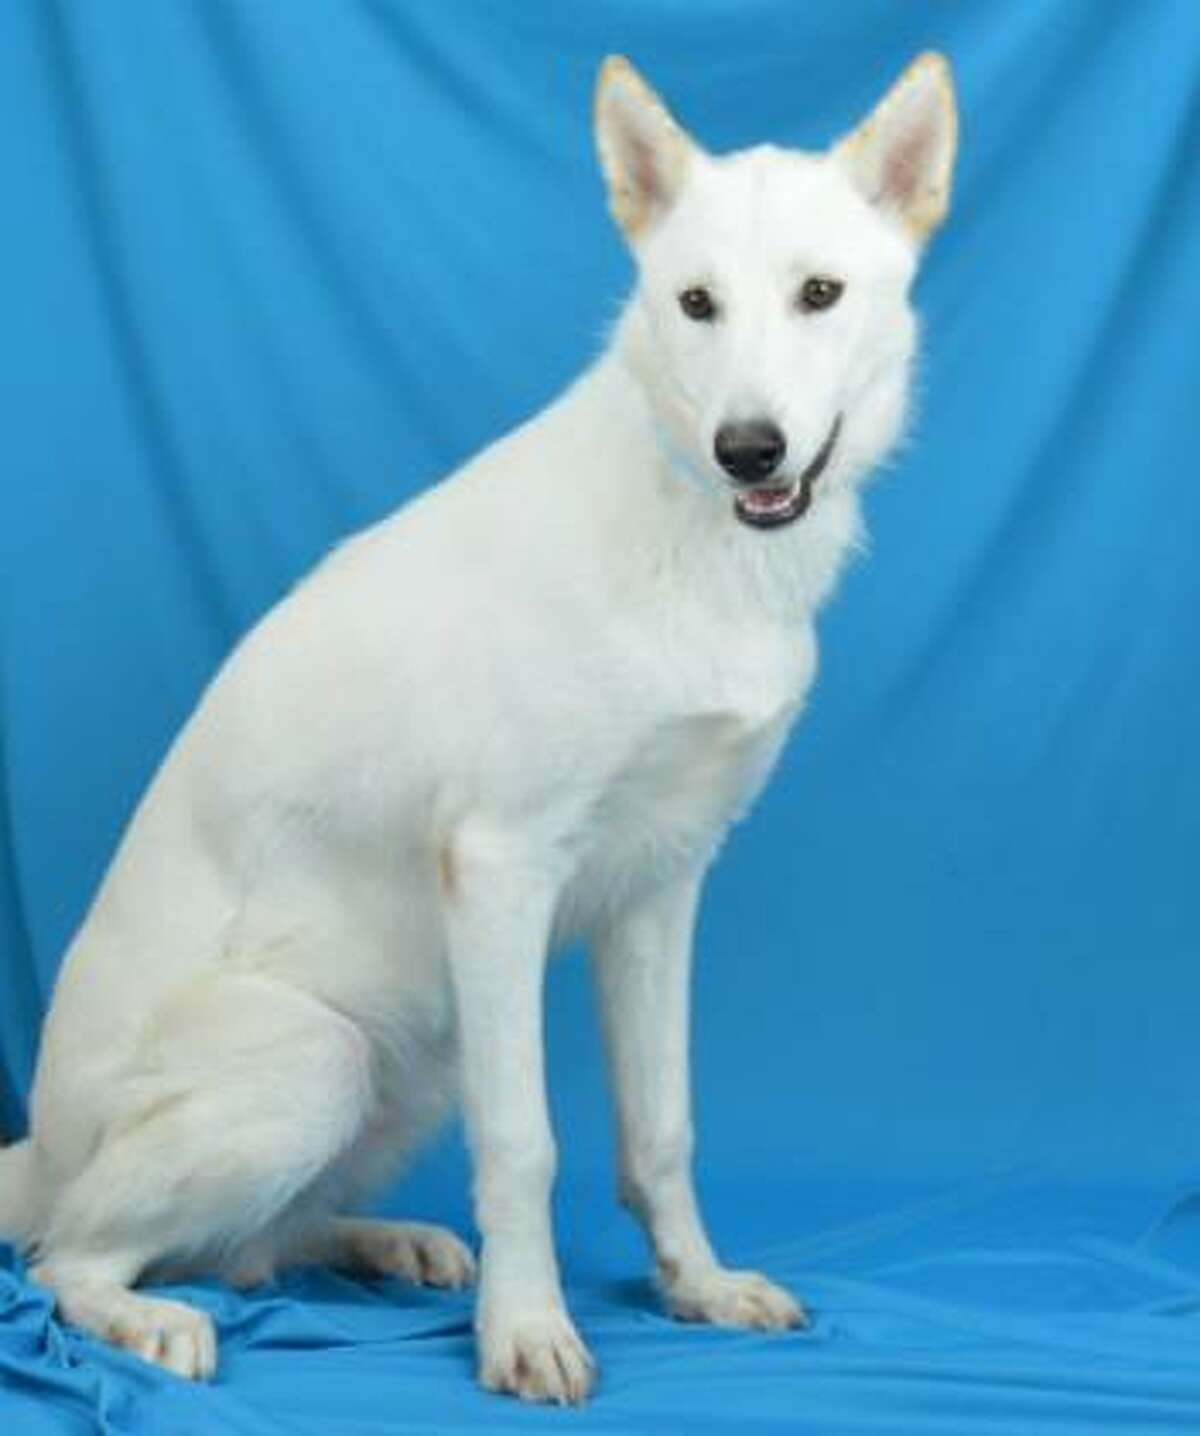 Paxel is a 2 year-old Siberian husky mix. He's a friendly boy that loves going for walks and stealing treats.   Now available for adoption from the Houston Humane Society